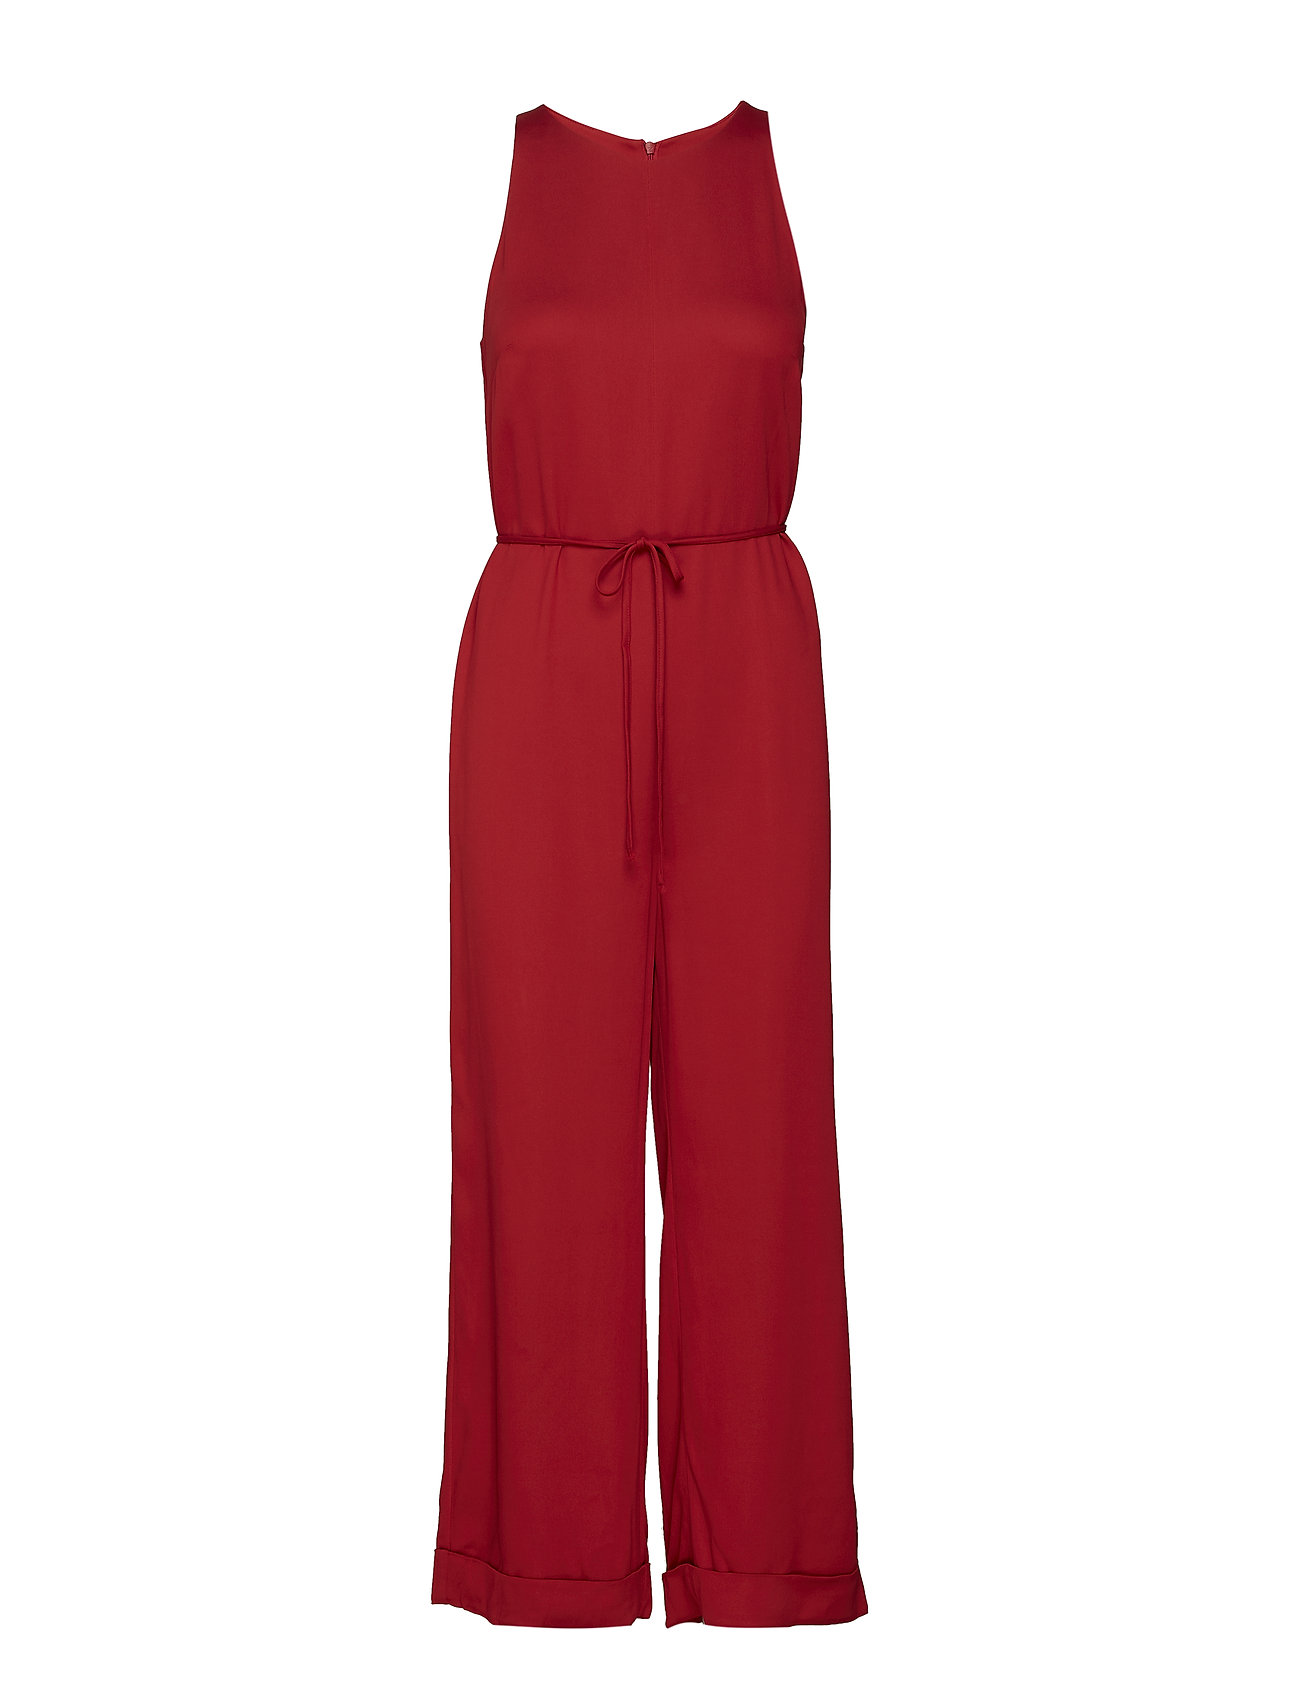 ÁERON tie front jumpsuit - POPPY RED